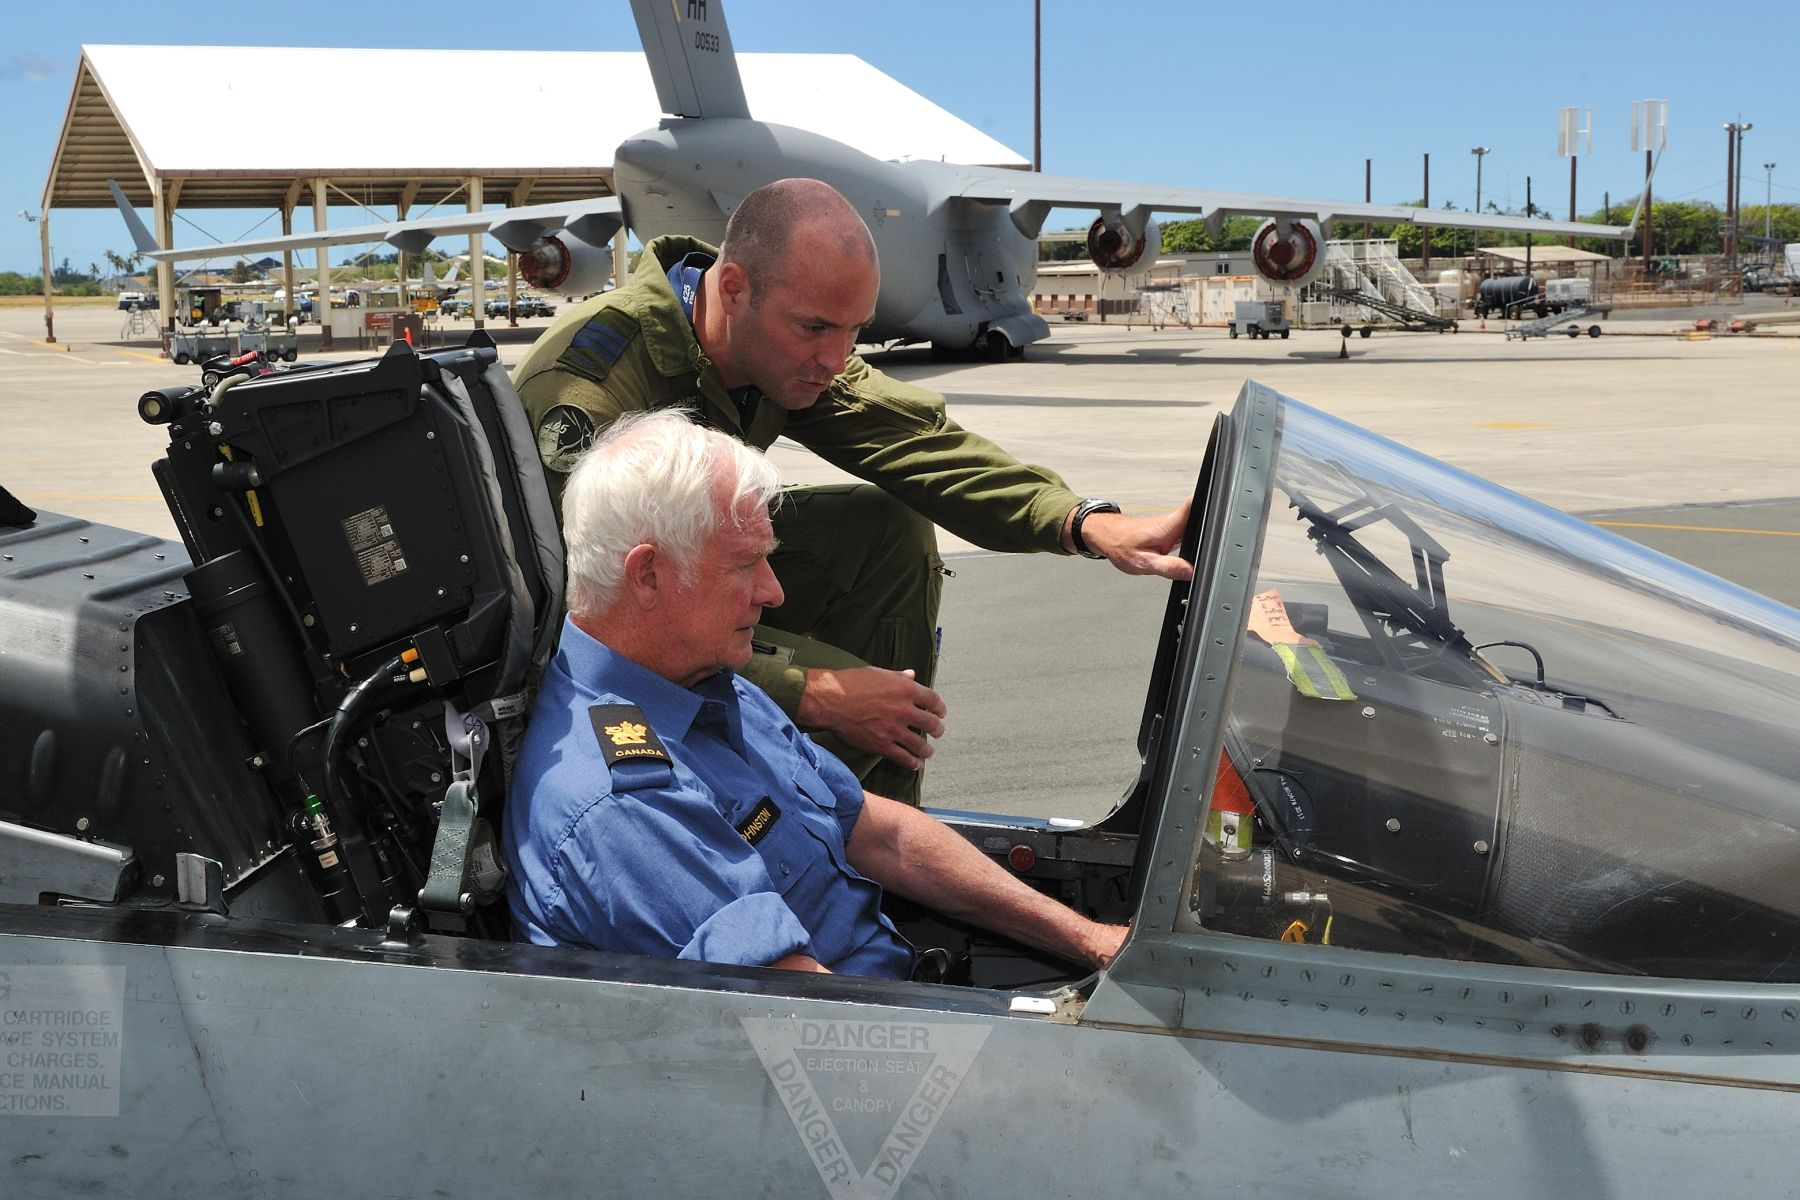 During his visit, His Excellency met with 425 Tactical Fighter Squadron crew, based in Bagotville, Quebec, and deployed for the RIMPAC 2012 exercice. Lieutenant-Colonel Darcy Molstad gave him a tour of the cockpit of a CF-18 Hornet.